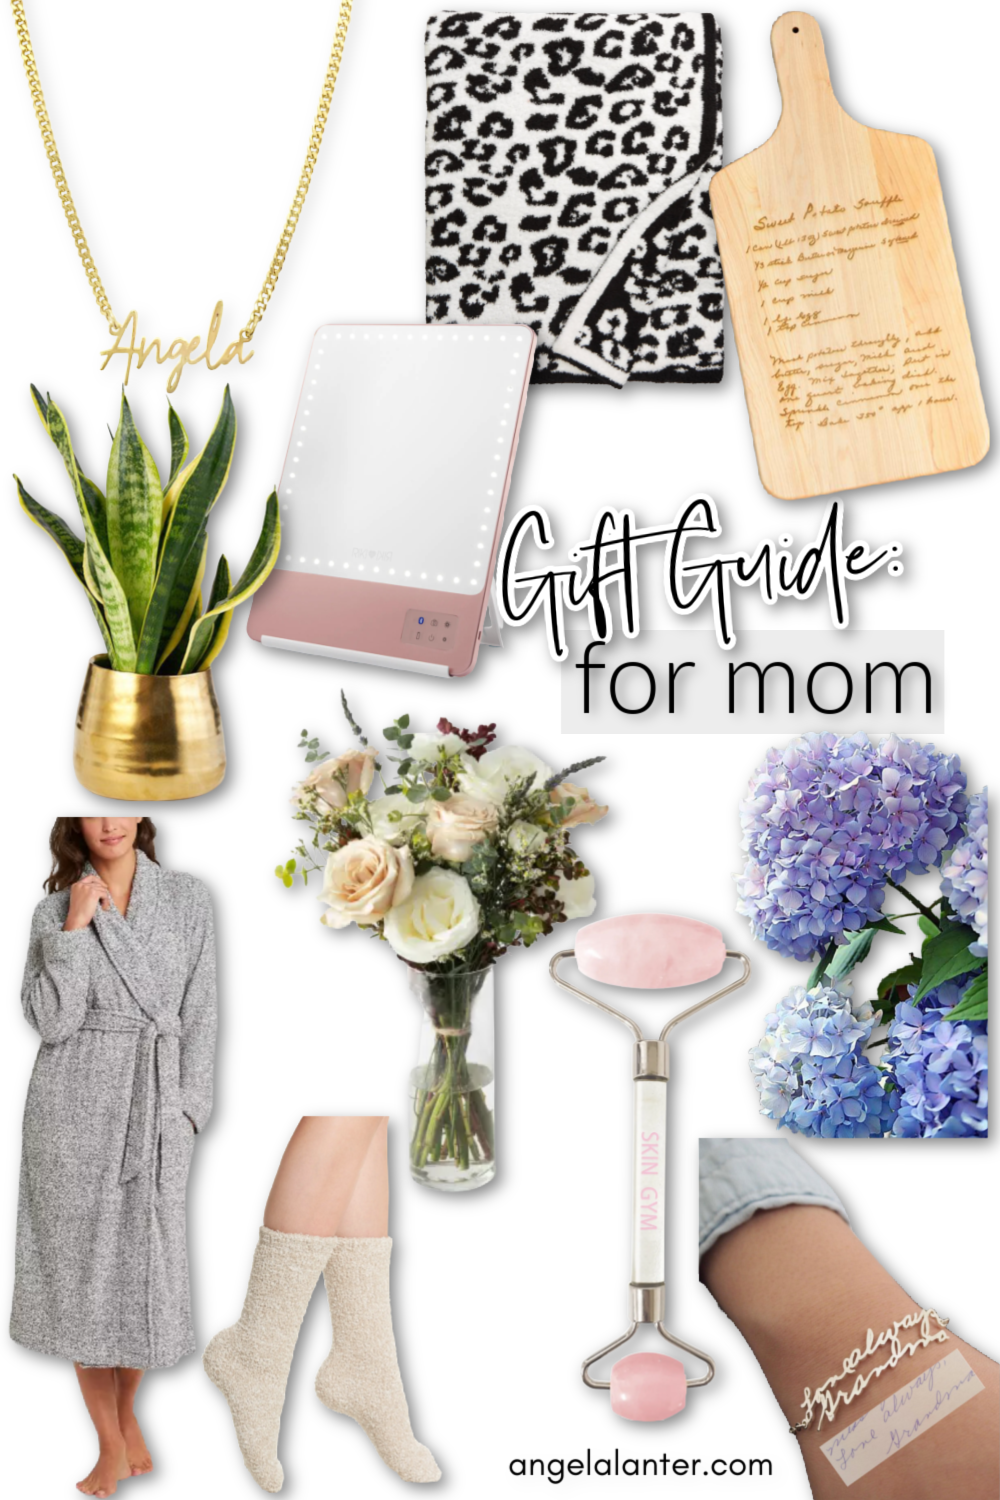 11 Unique Christmas Gifts Your Mom Will Love!